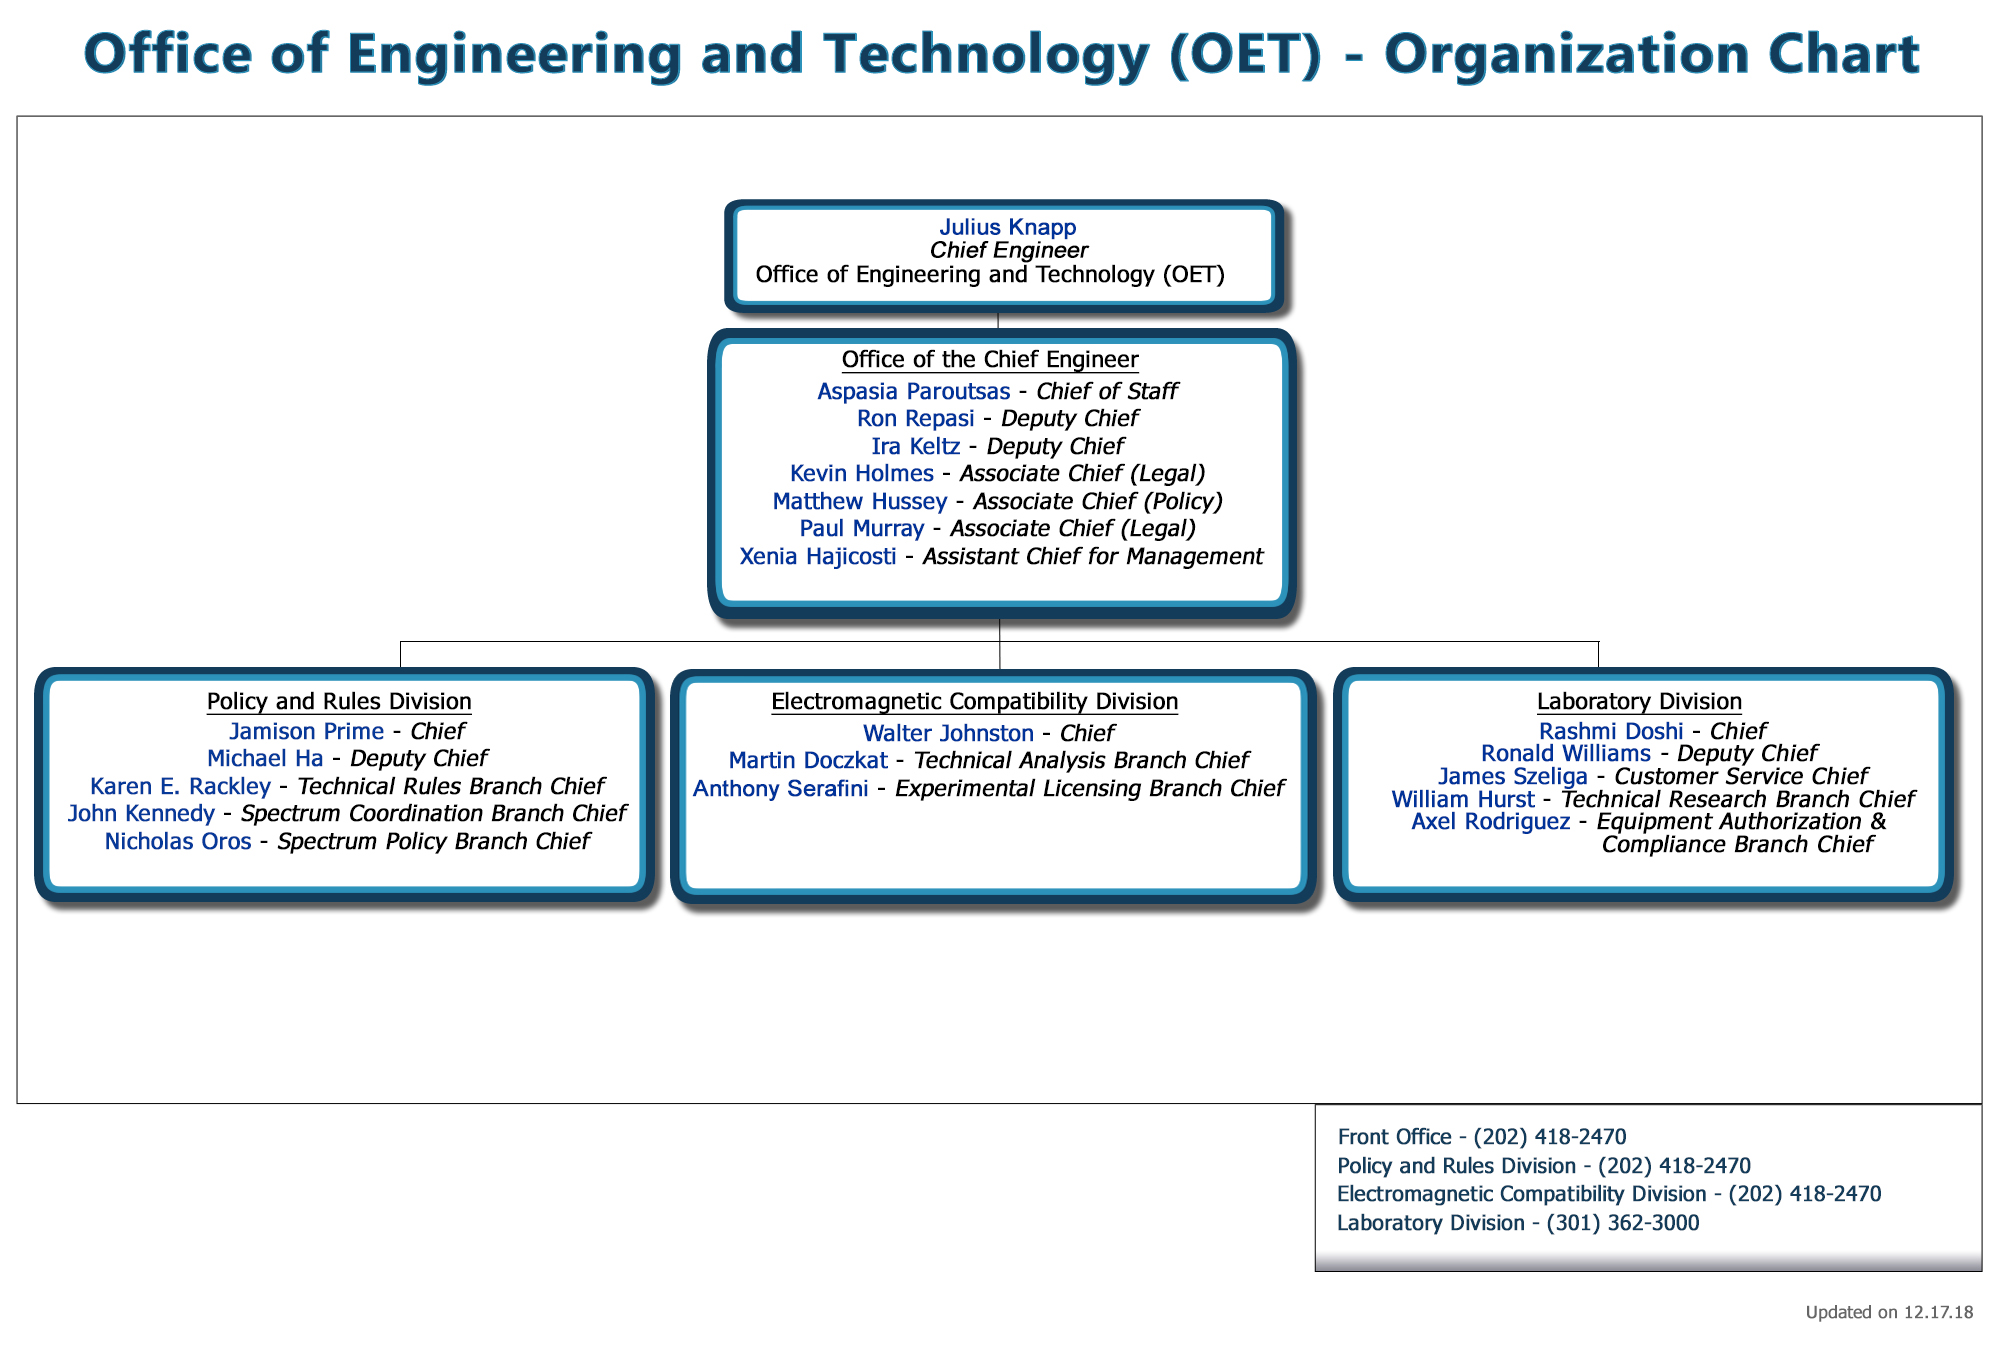 Office of engineering and technology oet organization chart click to print oet organization chart altavistaventures Image collections